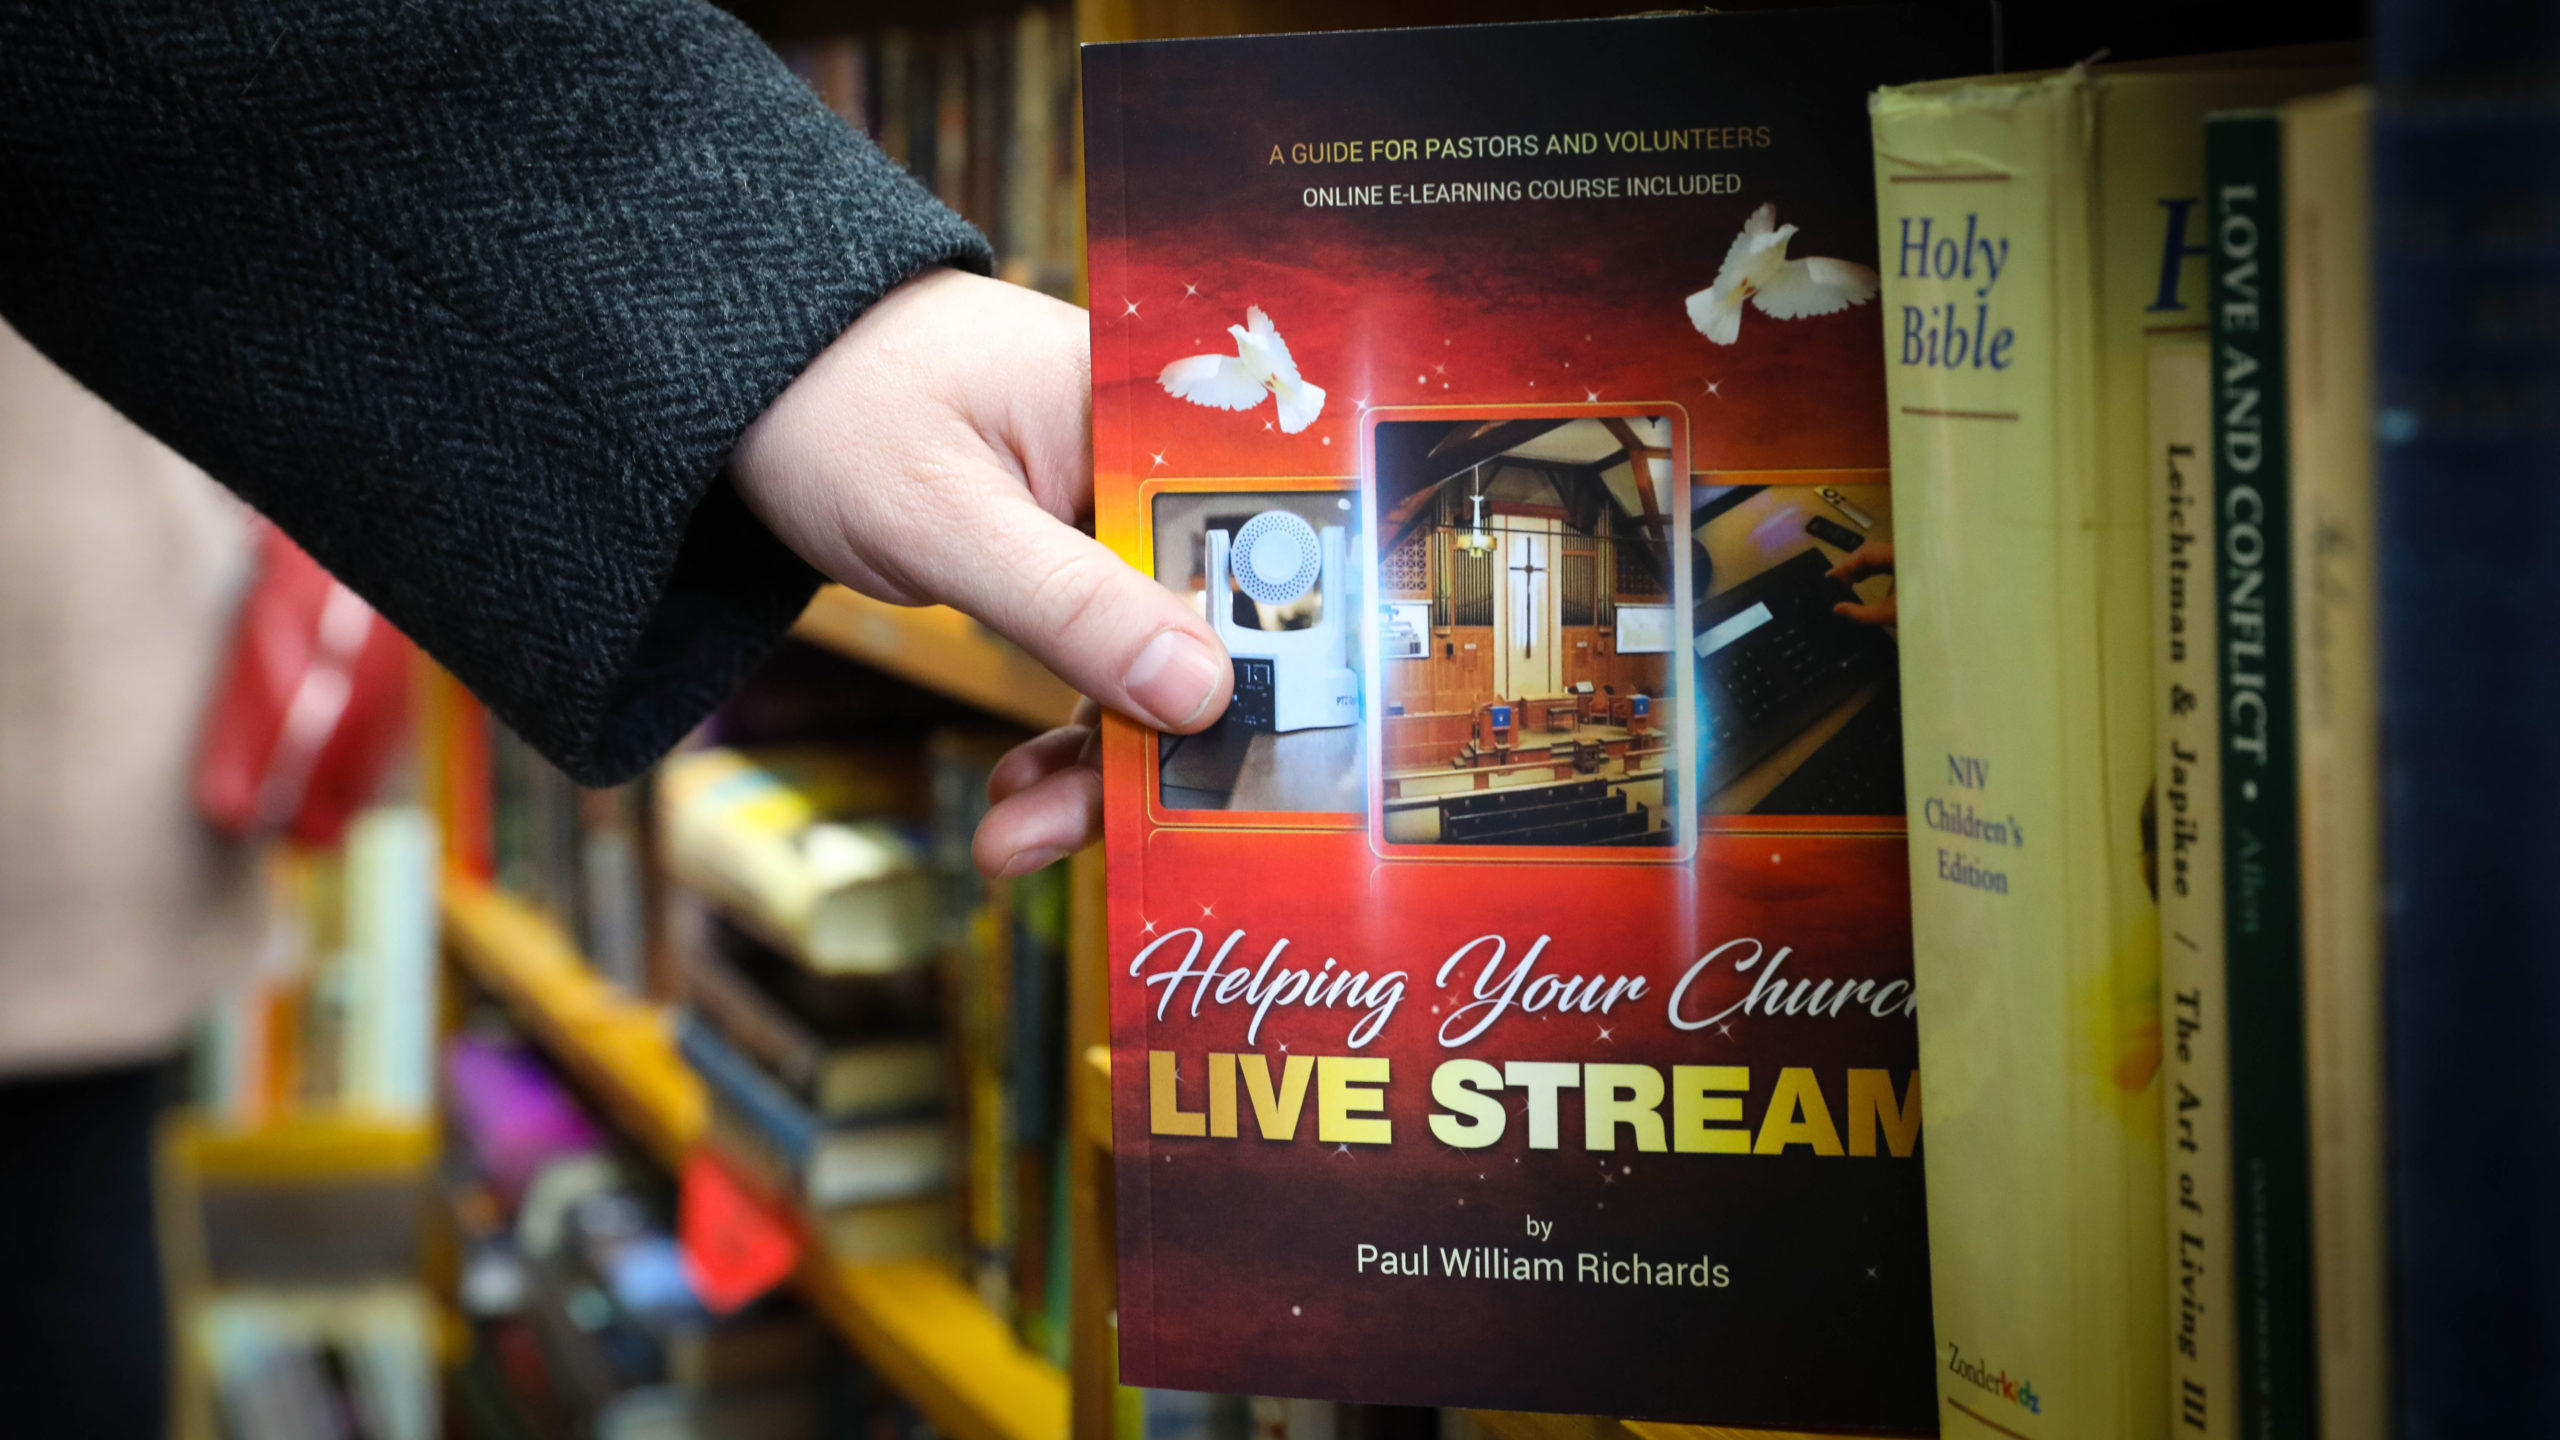 Amidst Coronavirus Outbreak, 'Helping Your Church Live Stream' Book Available Free to Houses of Worship to Pick Up in West Chester